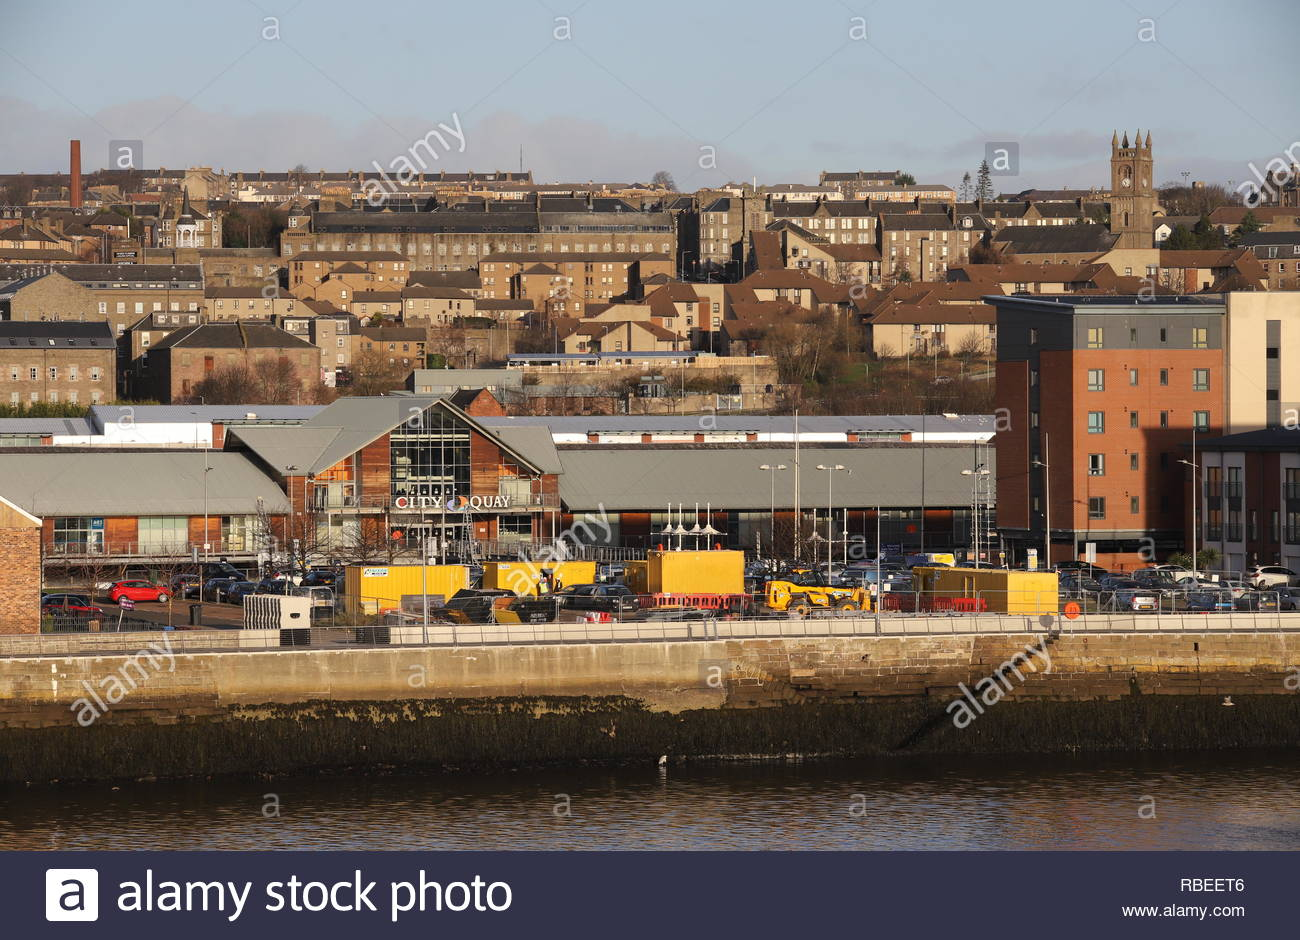 South Victoria Dock Road Car Park planned to be redeveloped into apartments Dundee Scotland  January 2019 - Stock Image